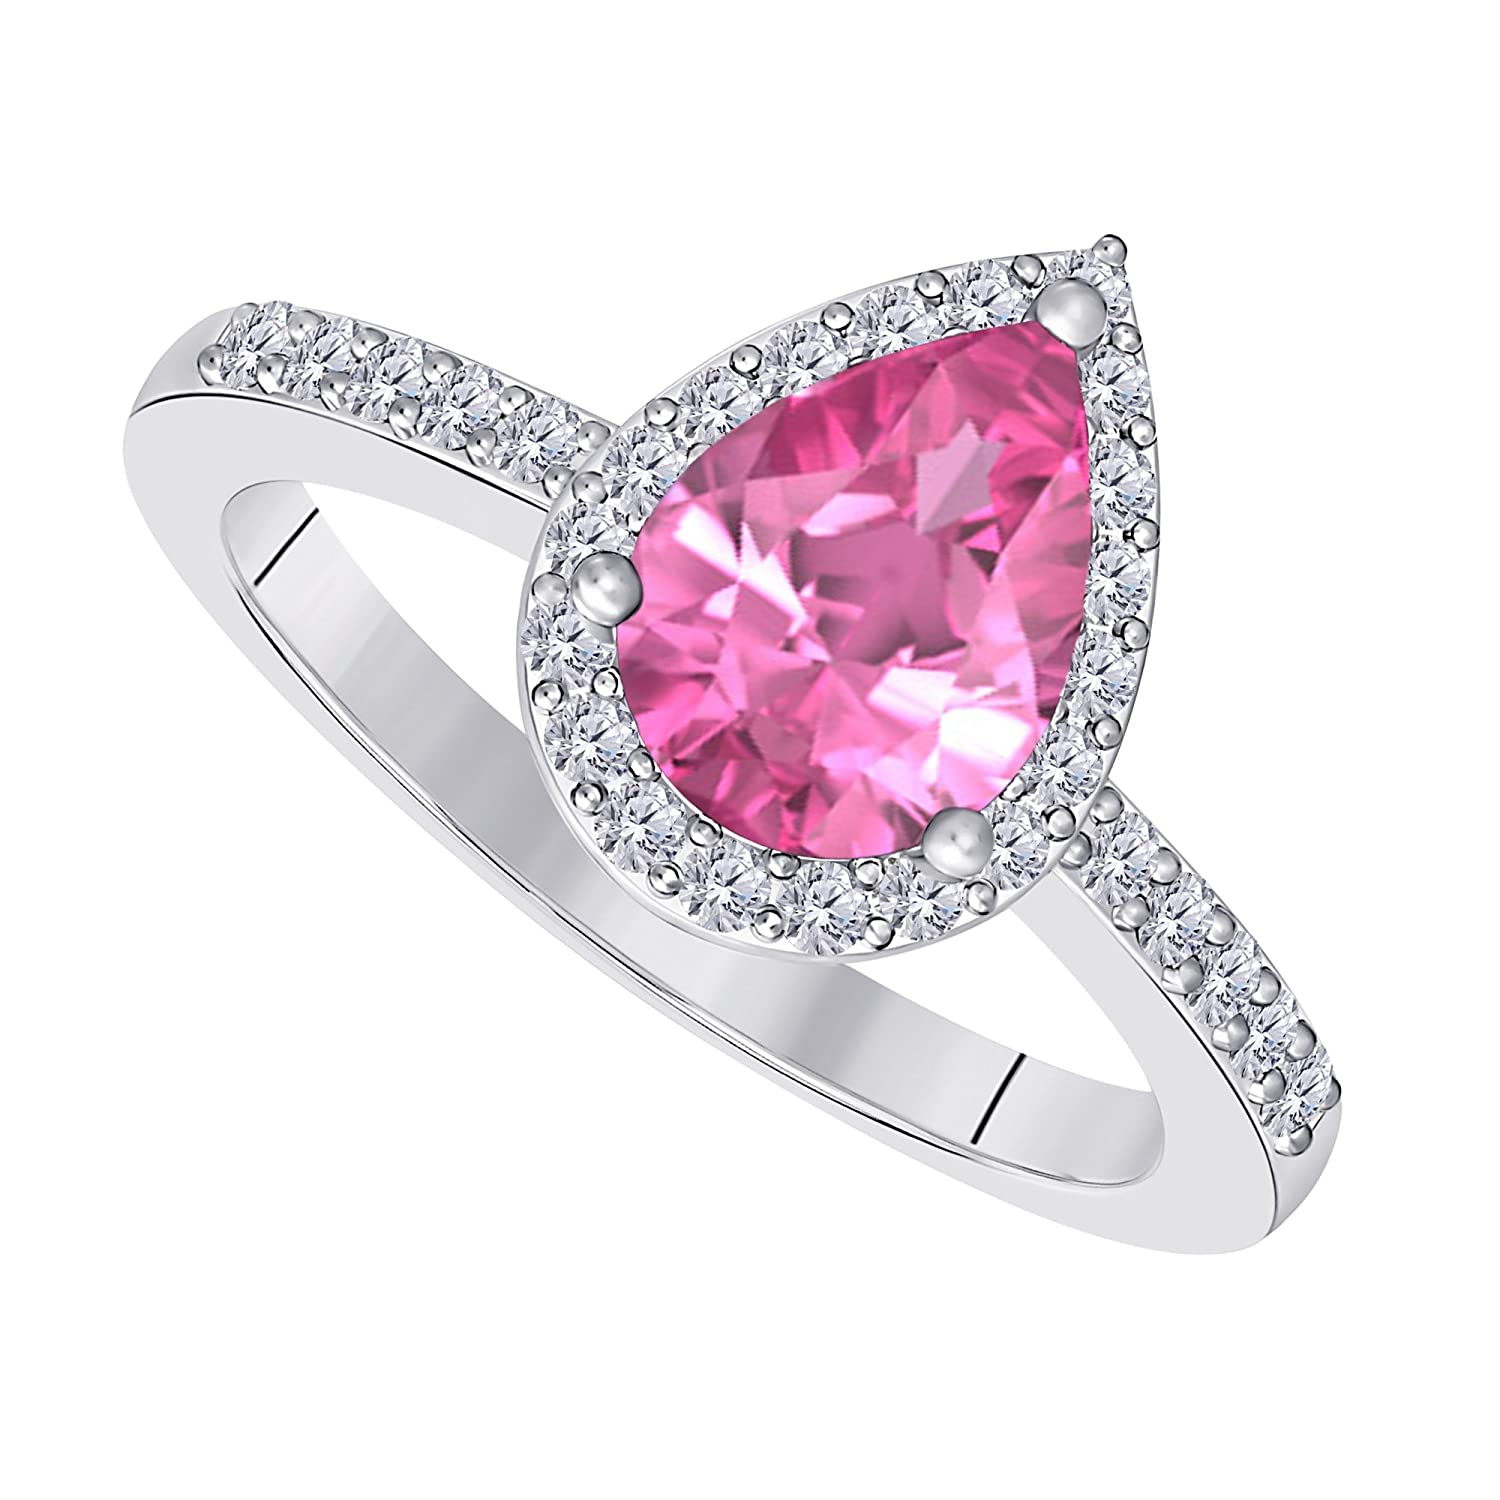 3 Carat Pear Shape Lab Created Pink Sapphire Cubic Zirconia Halo Style Rhodium Over Alloy Wedding Engagement Ring Womens Jewelry